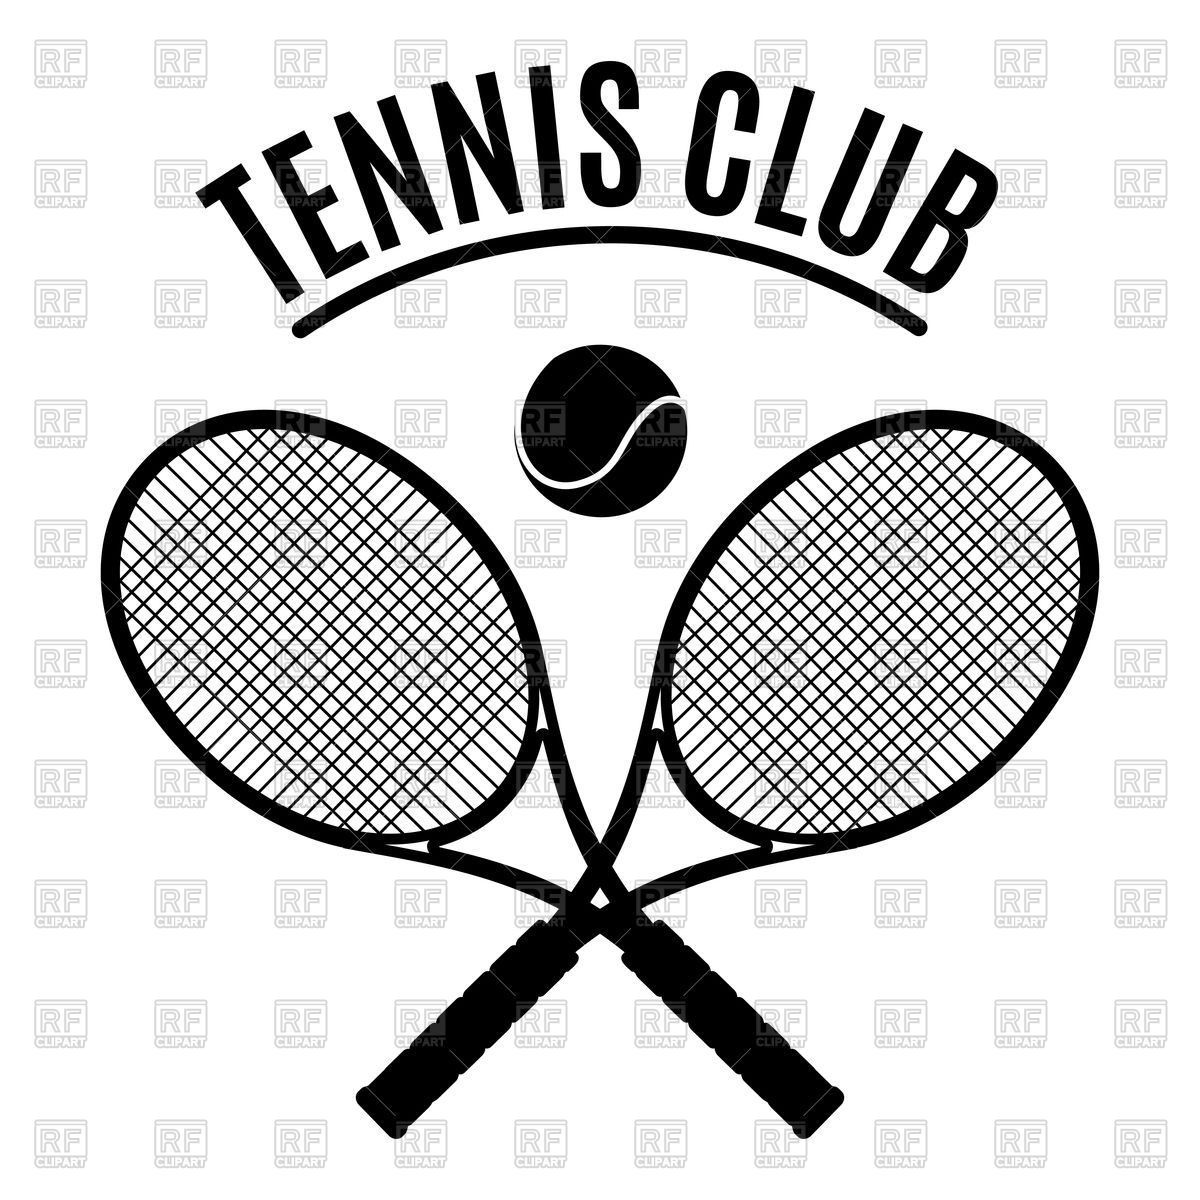 Download Royalty Free Black And White Tennis Club Emblem Vector Image 137668 From Rfclipart Illustrations Free Vector Illustration Vector Artwork Tennis Clubs